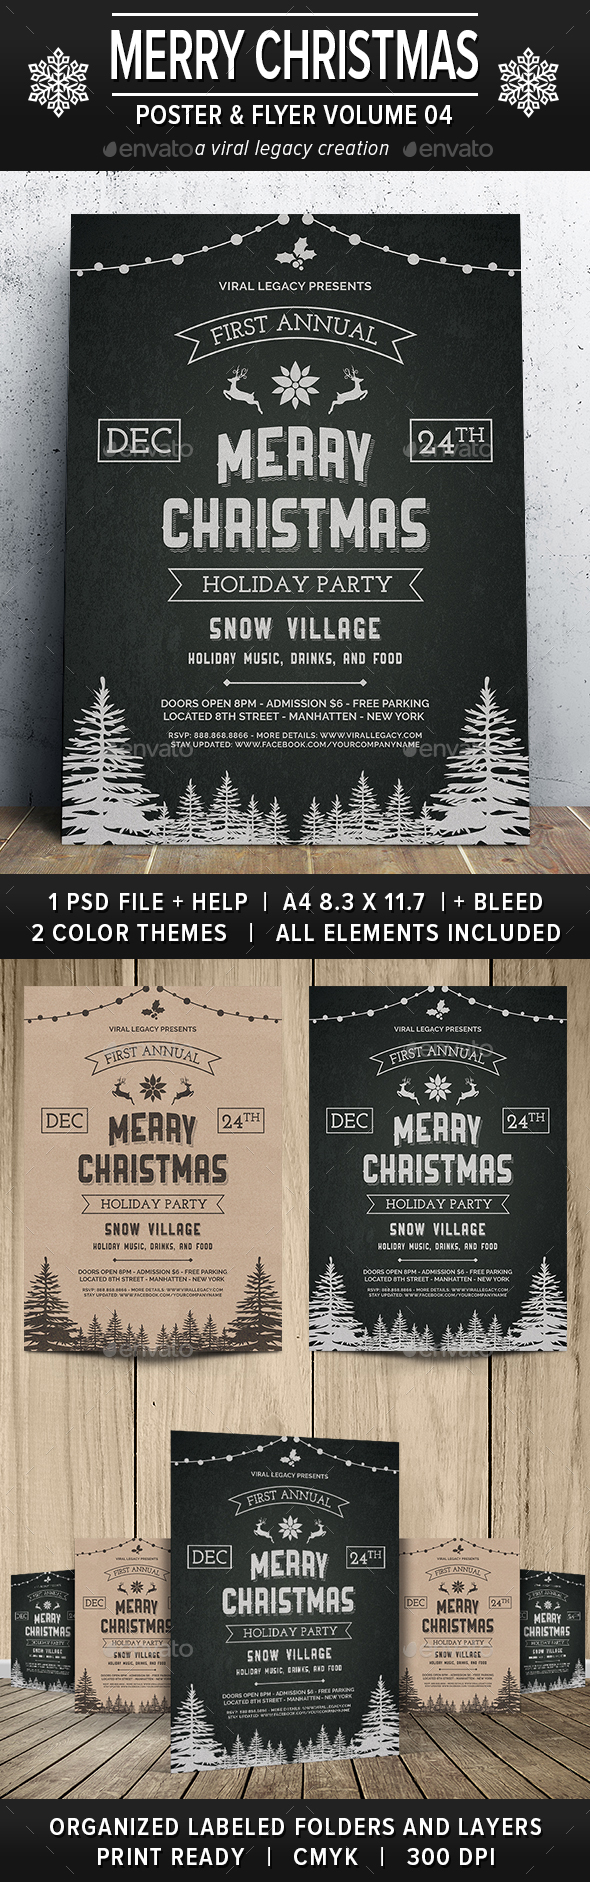 Merry Christmas Poster / Flyer V04 - Events Flyers